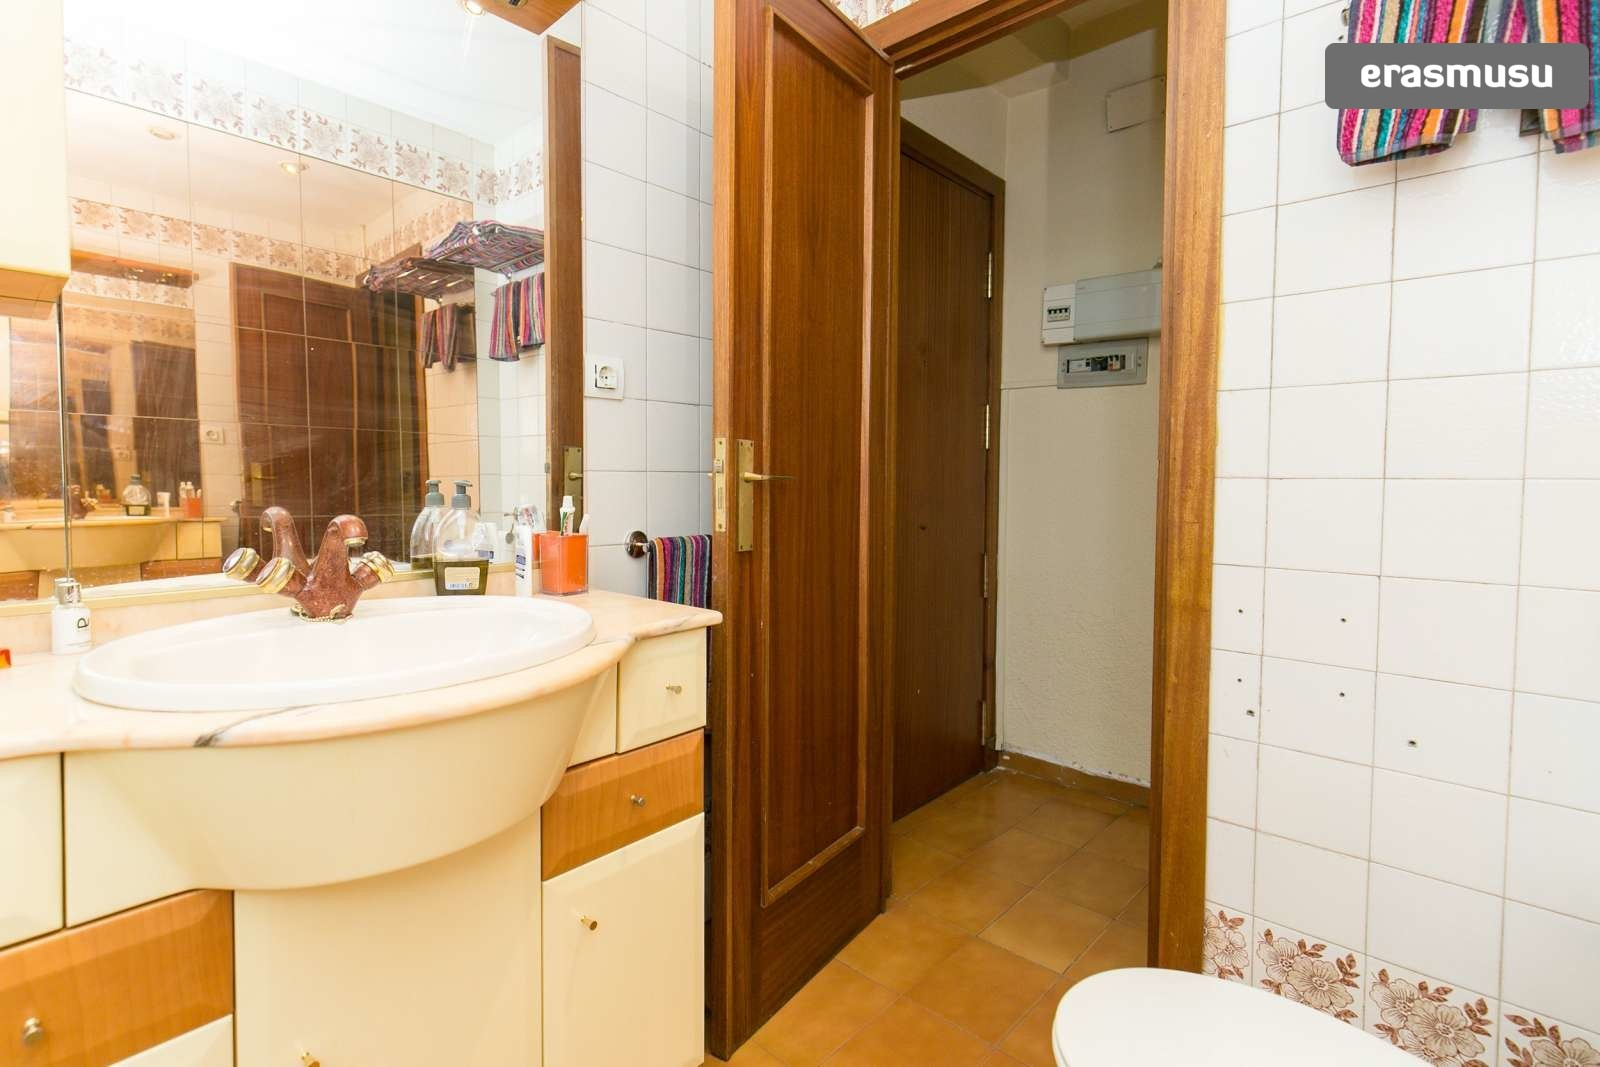 lovely-2-bedroom-apartment-rent-realejo-granada-b92c45a85facde92